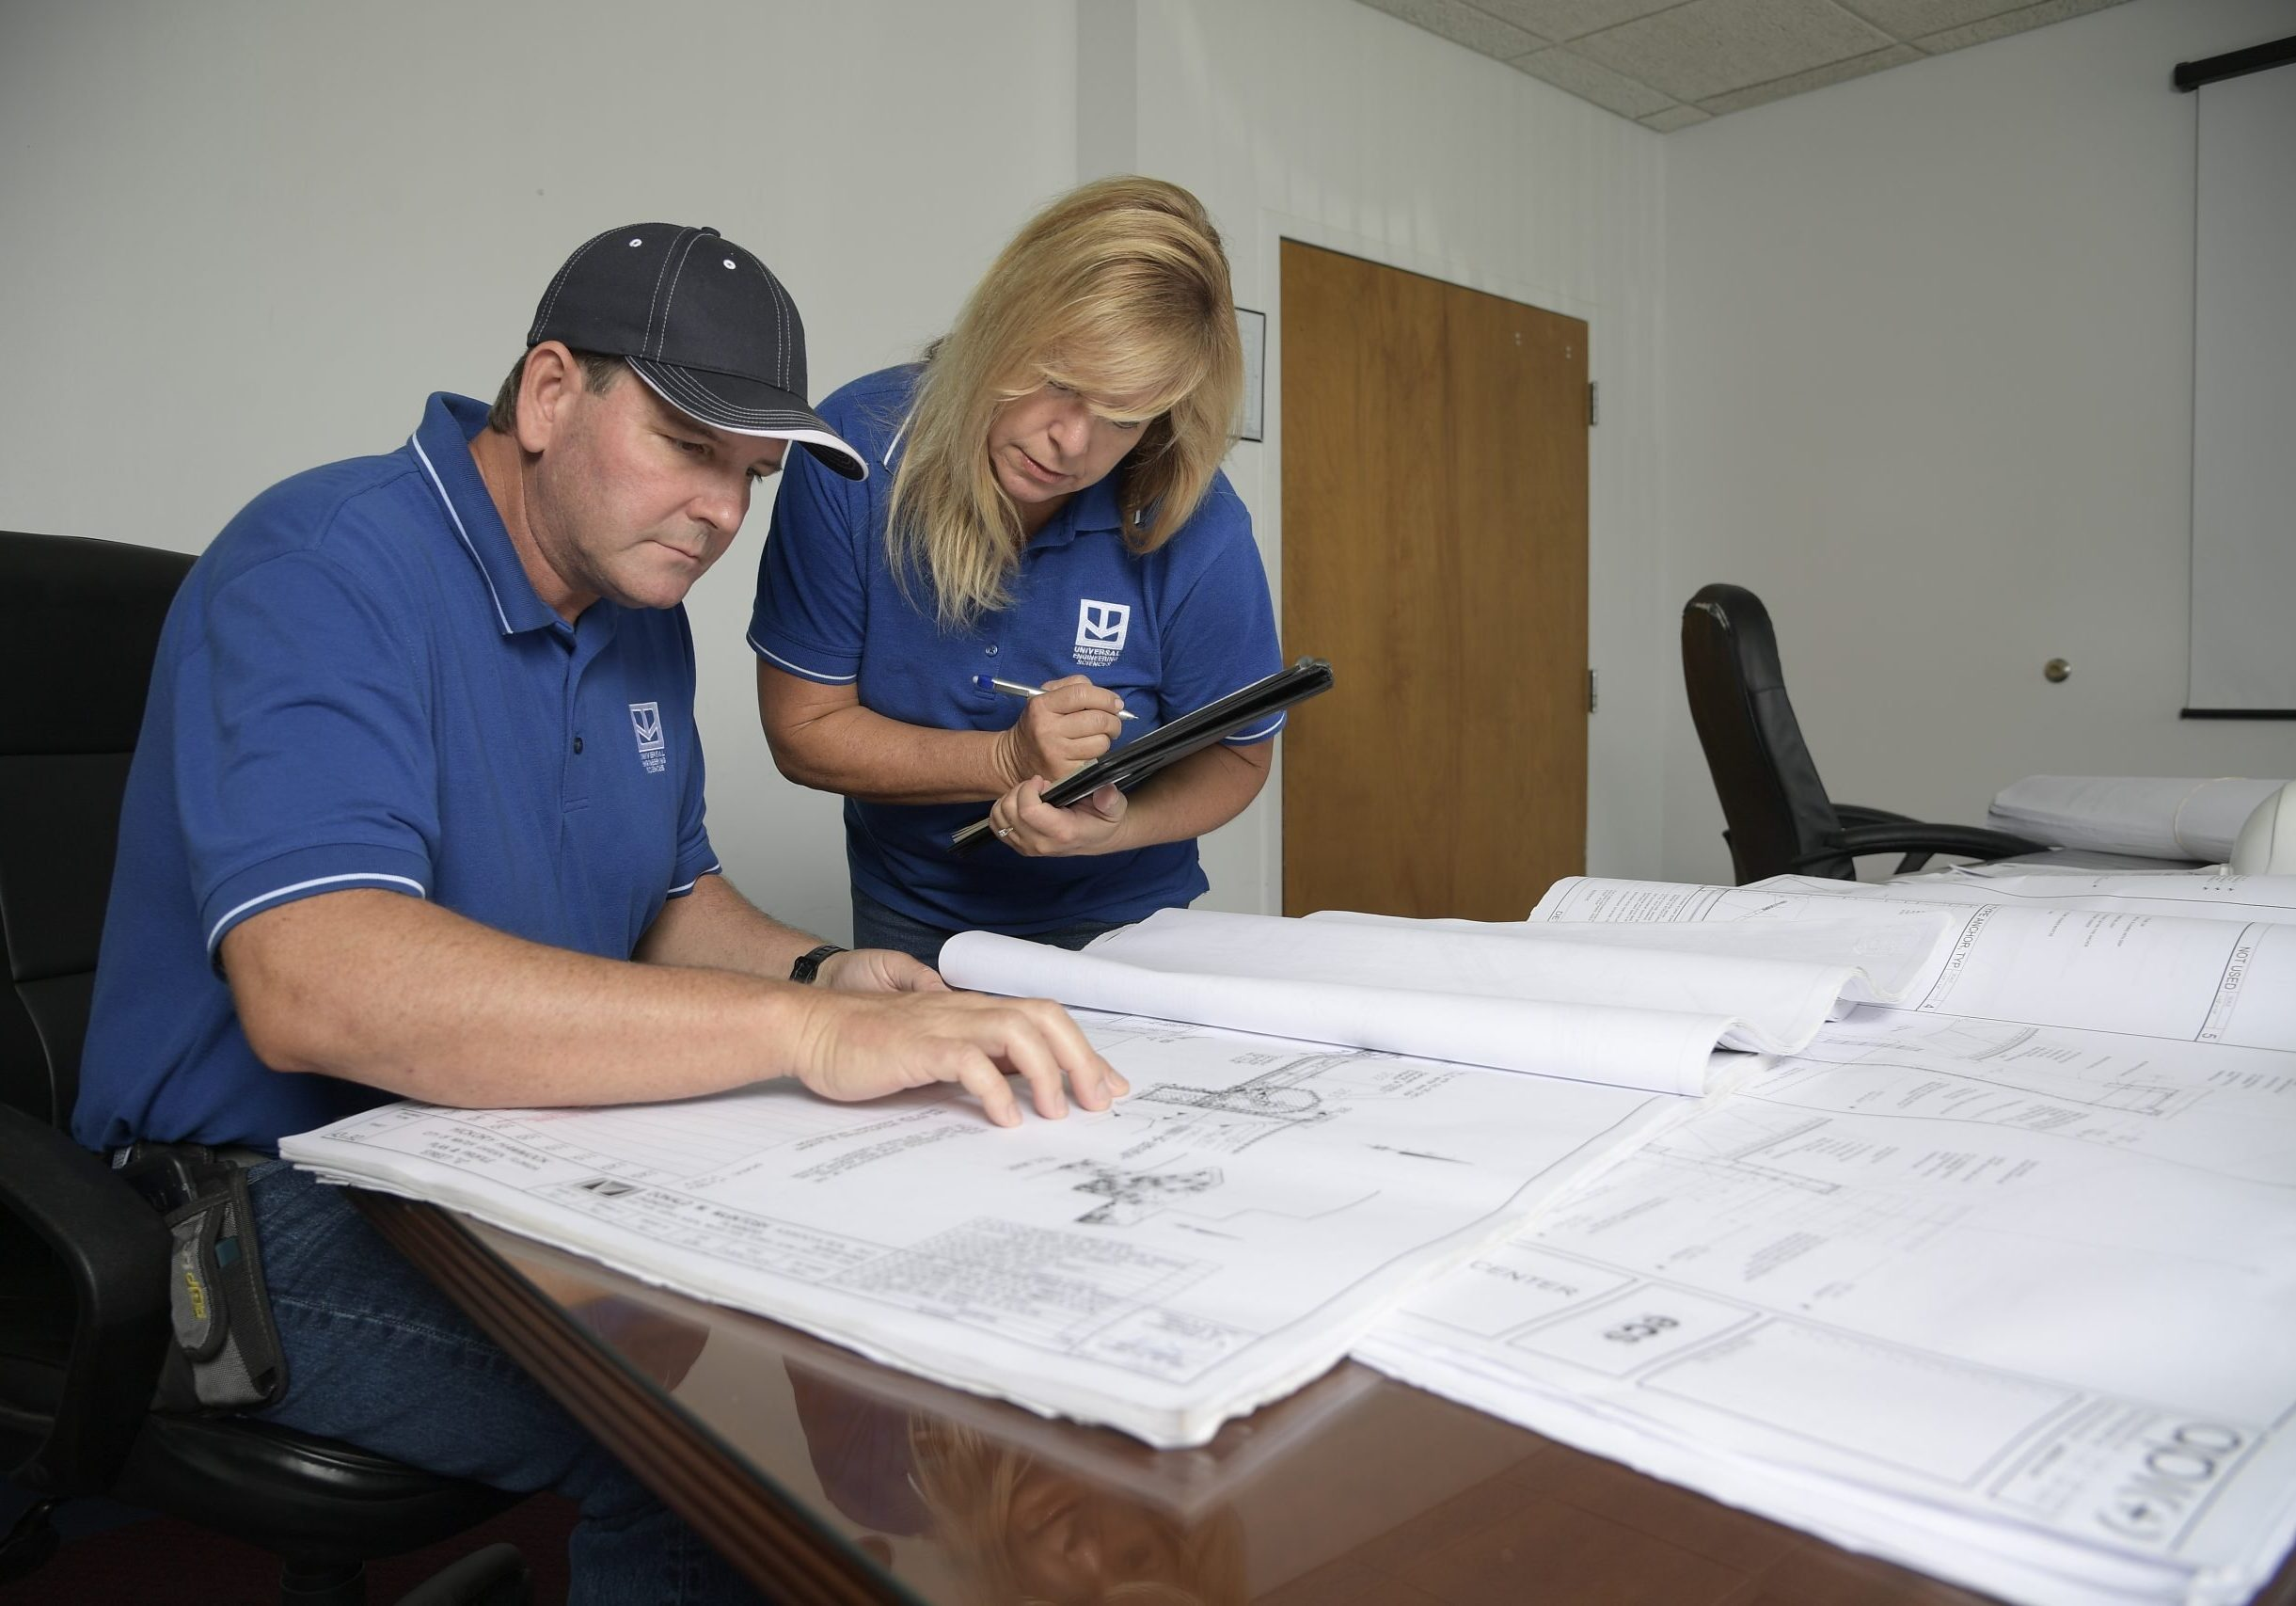 Two Employees Reviewing Plans